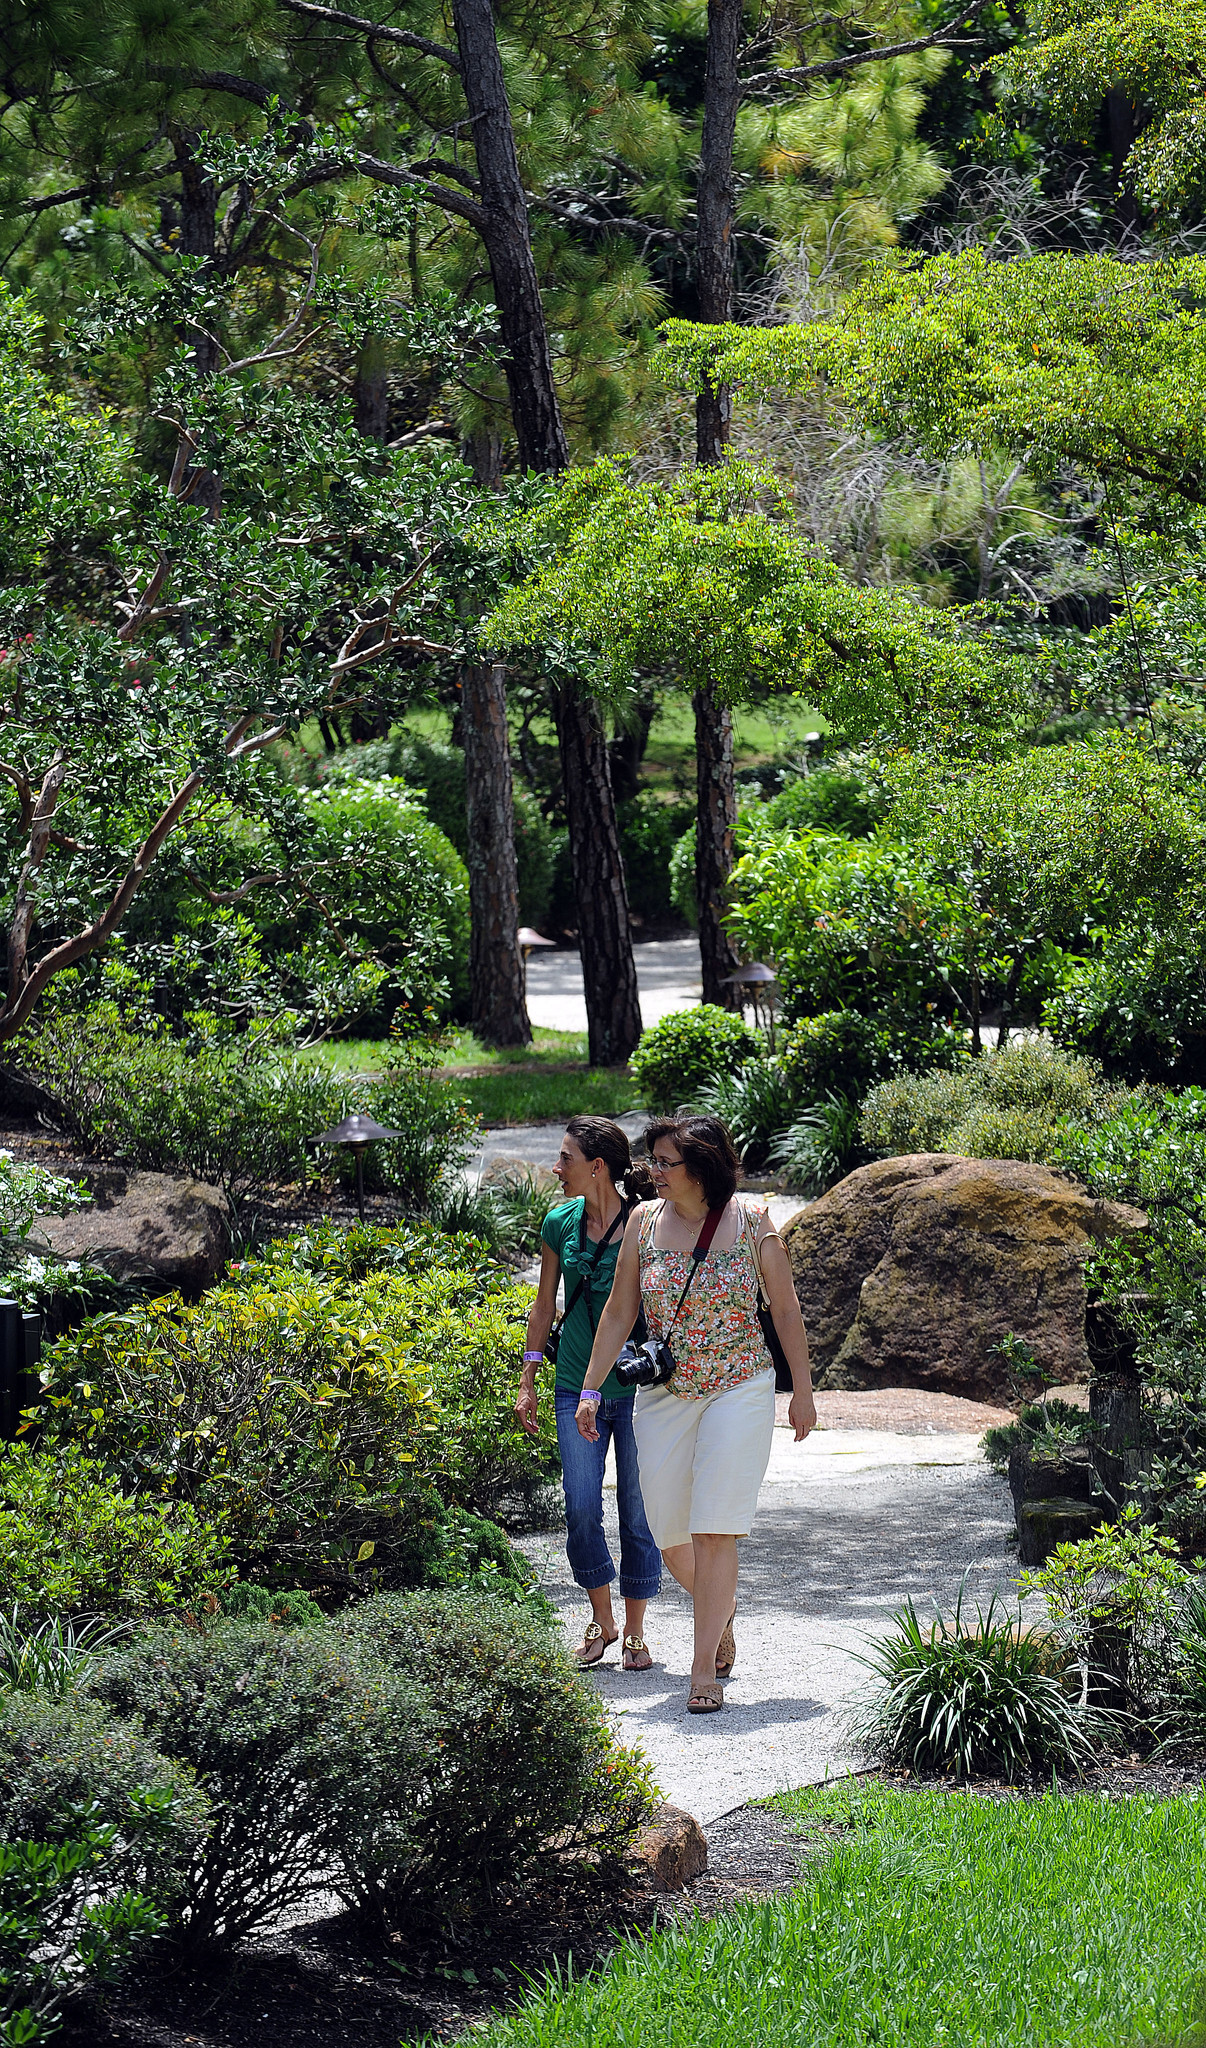 Things every South Floridian should do once - Morikami Japanese Gardens in Delray Beach